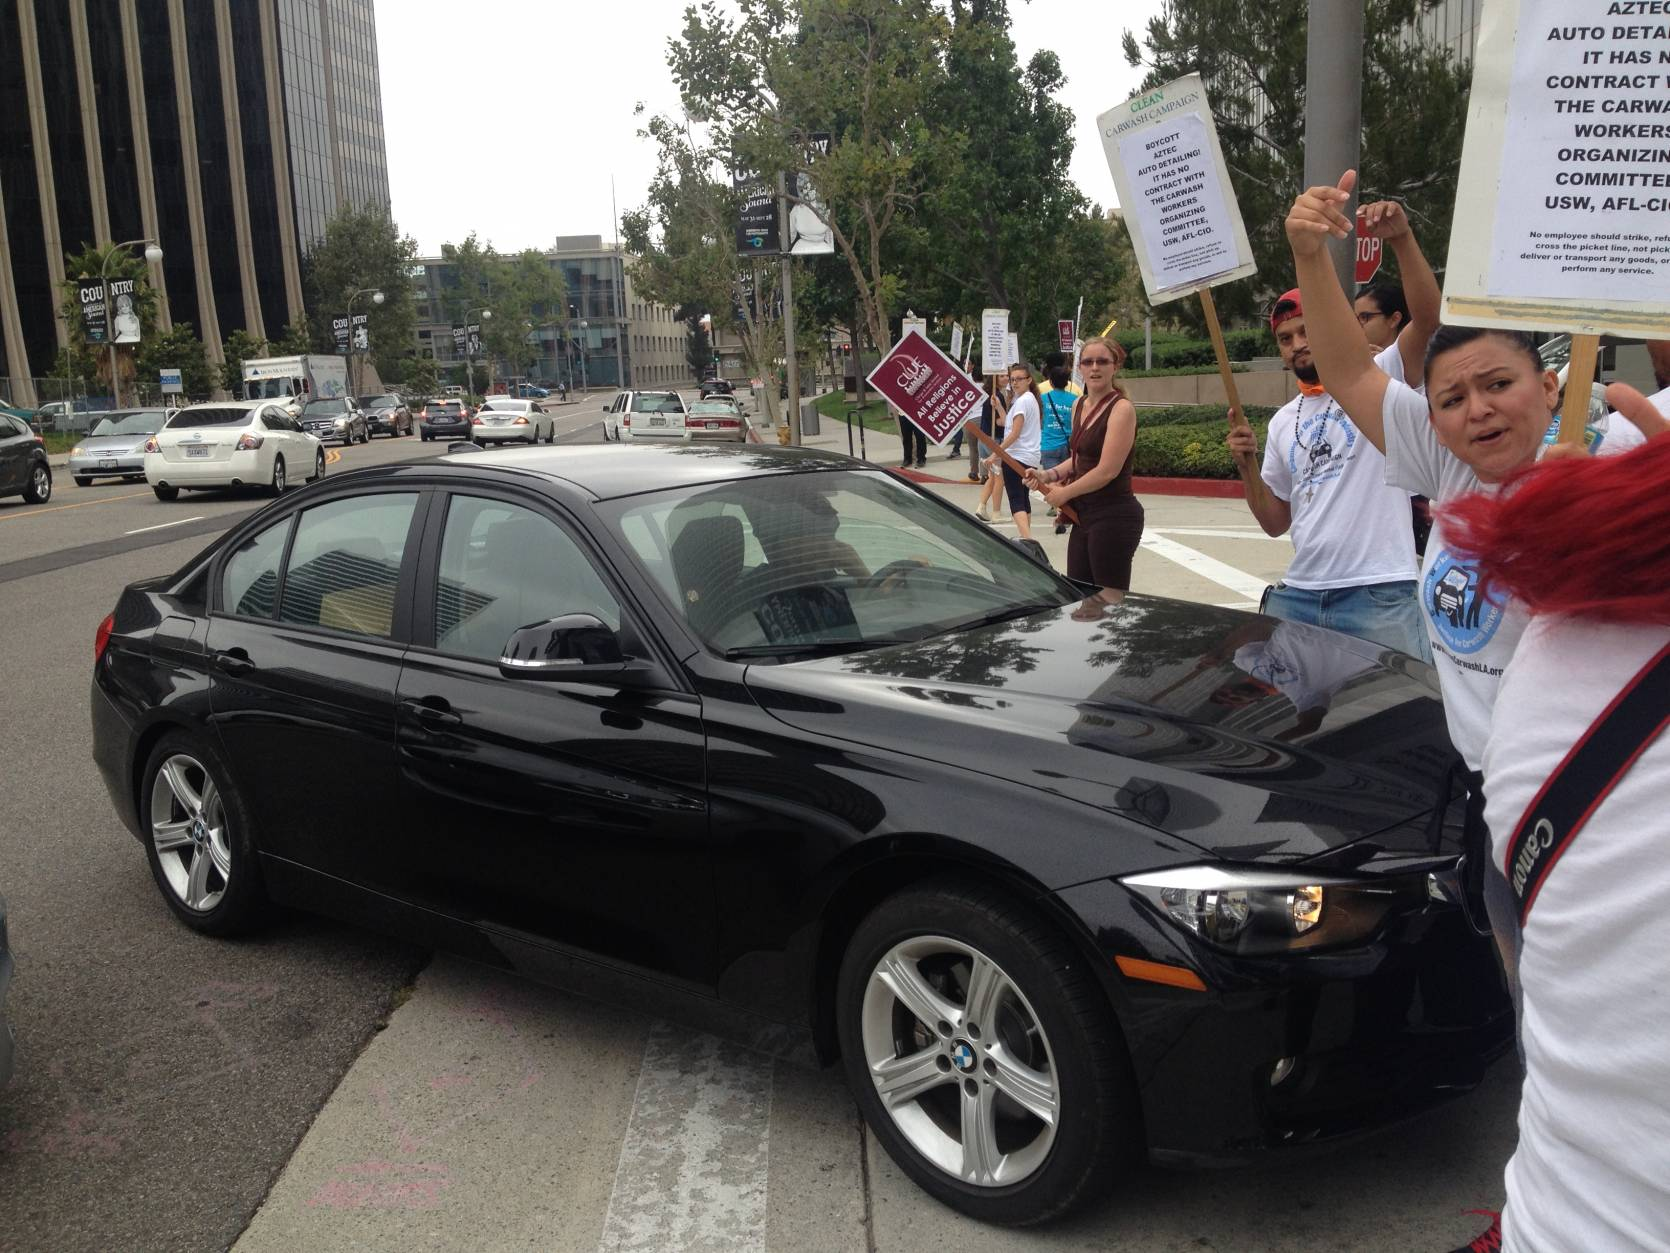 Hostile luxury car driver tries to drive through picket line